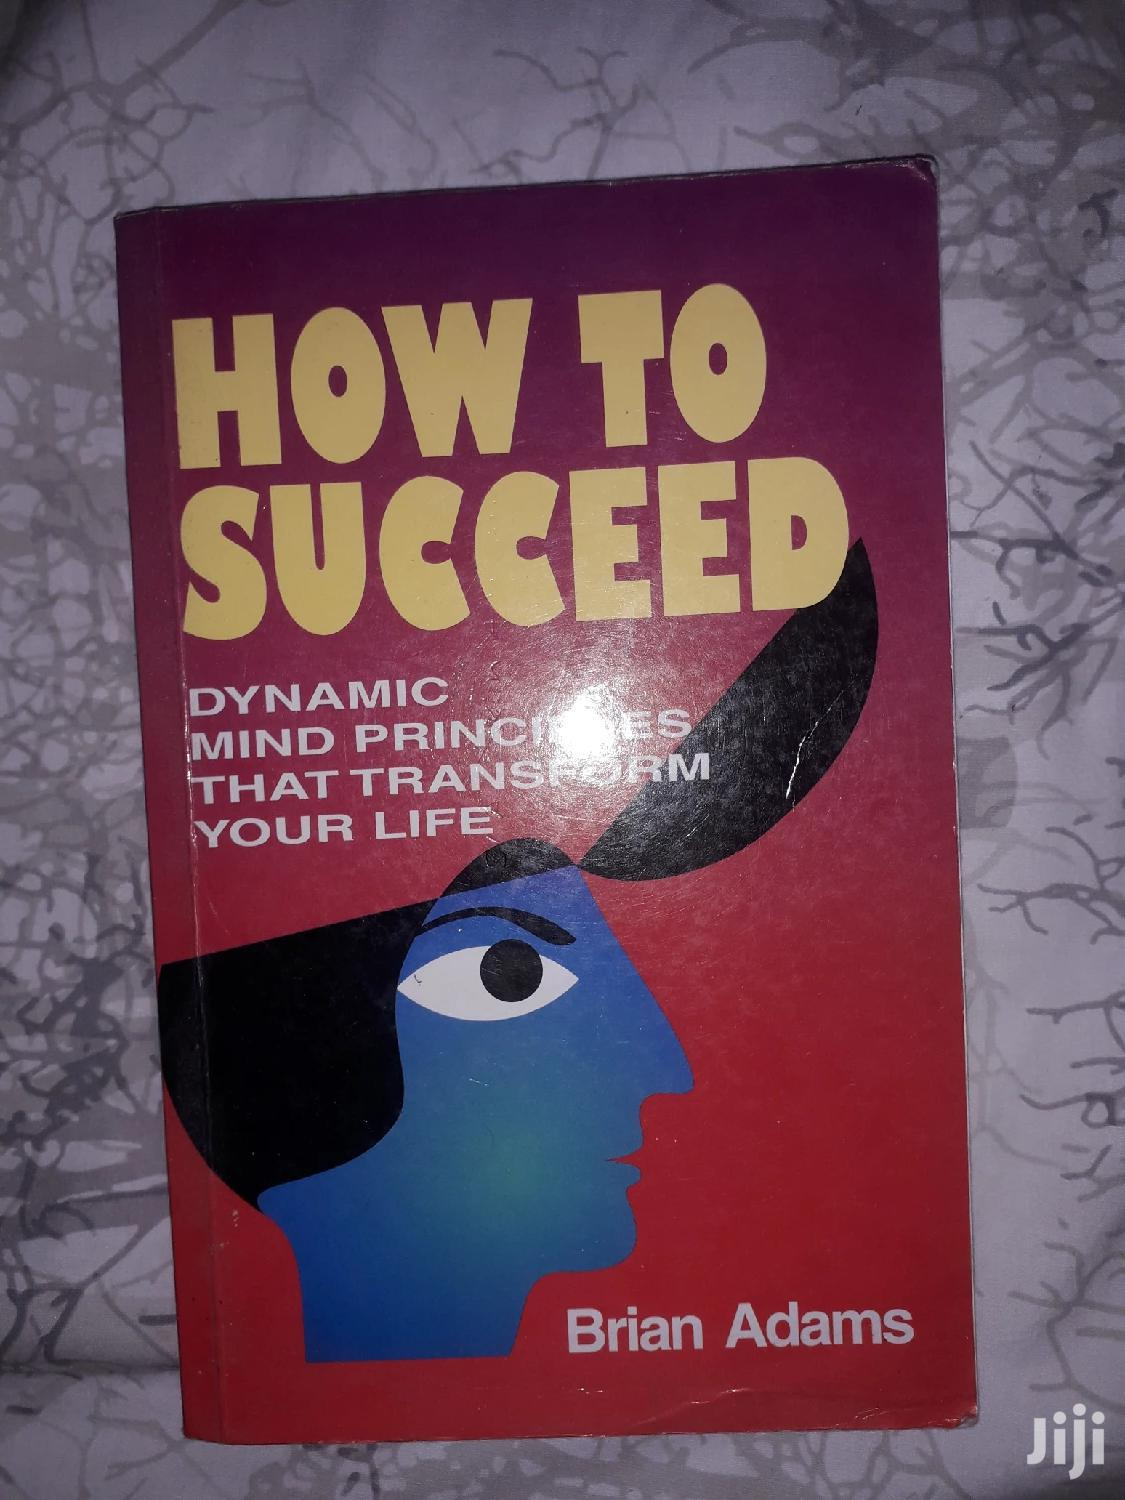 Archive: How to Succeed